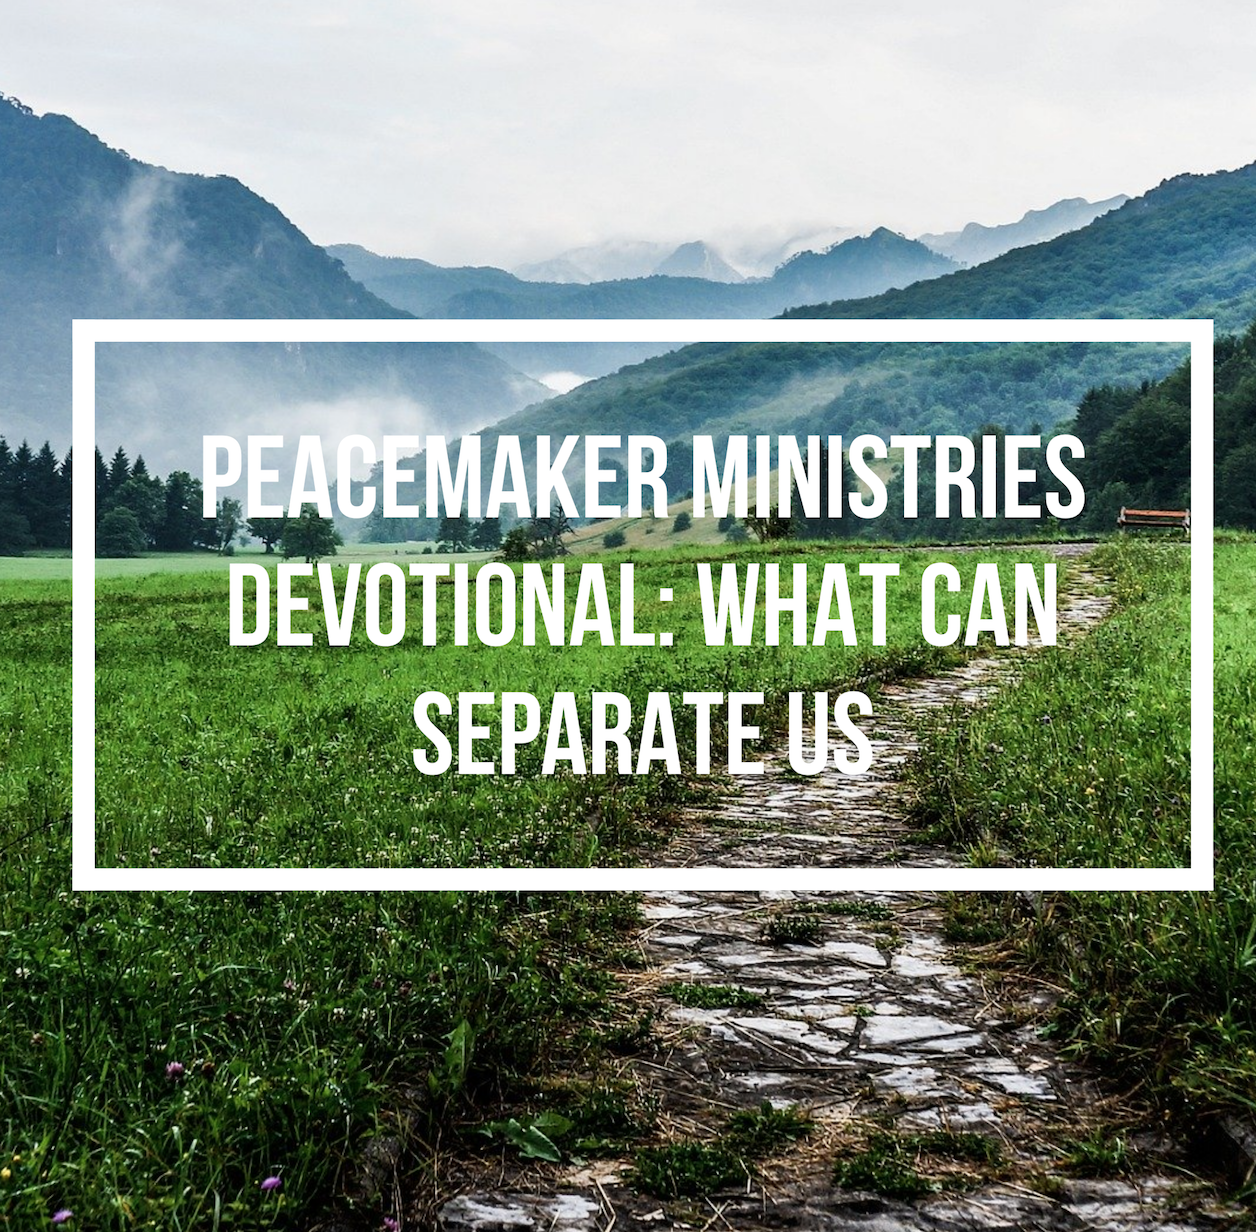 Peacemaker Ministries Devotional: What Can Separate Us